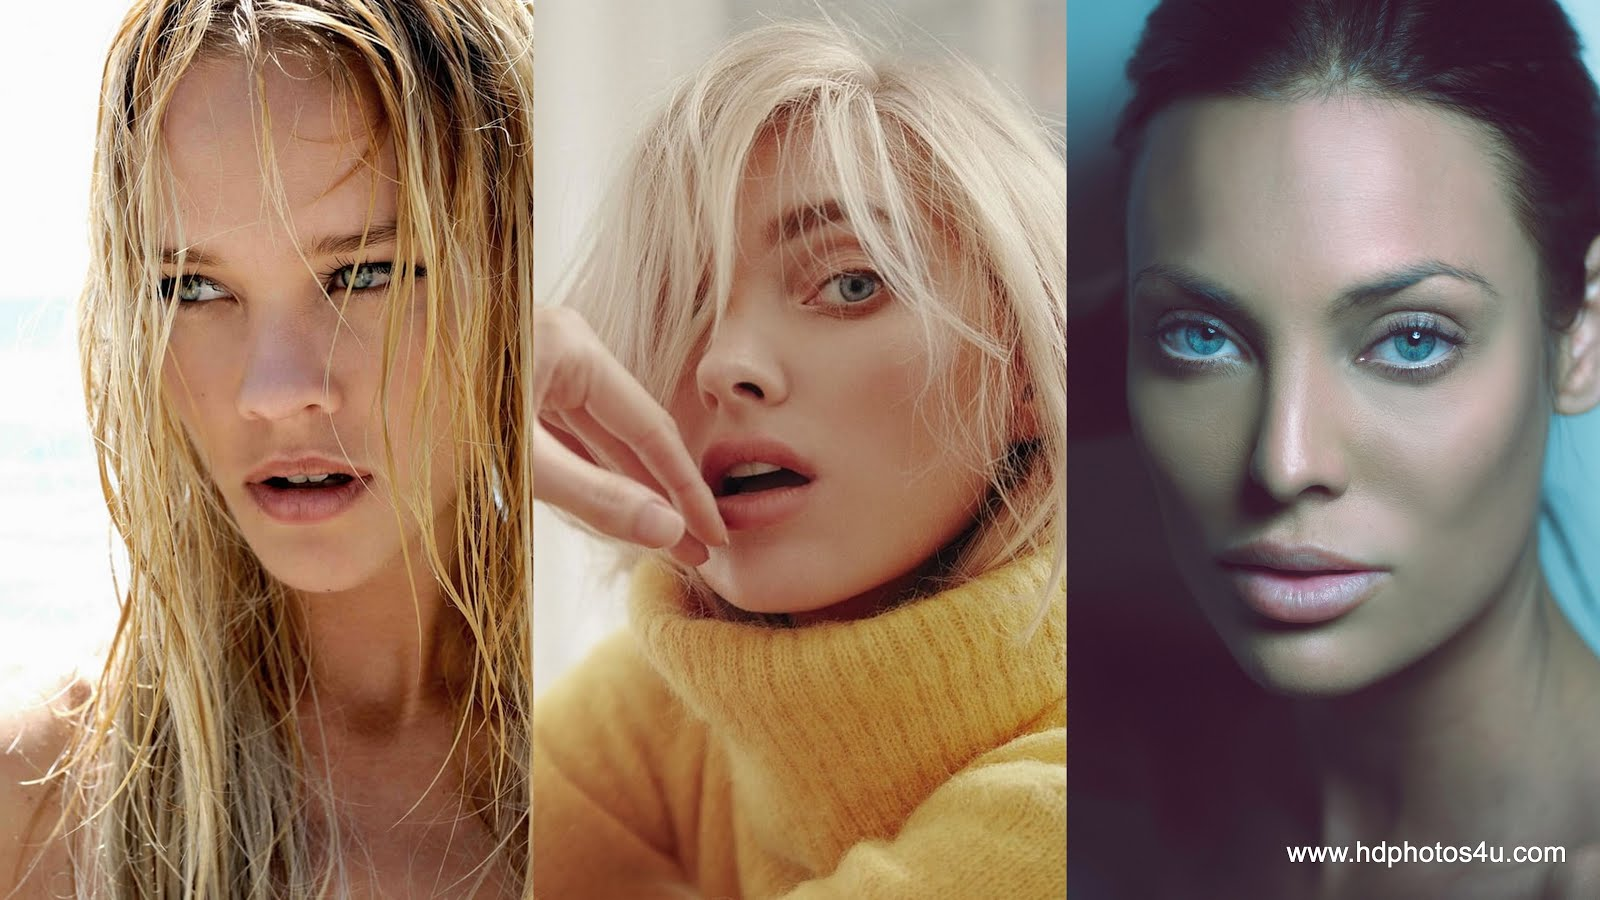 hottest & sexiest models of switzerland | top 10 beautiful swedish